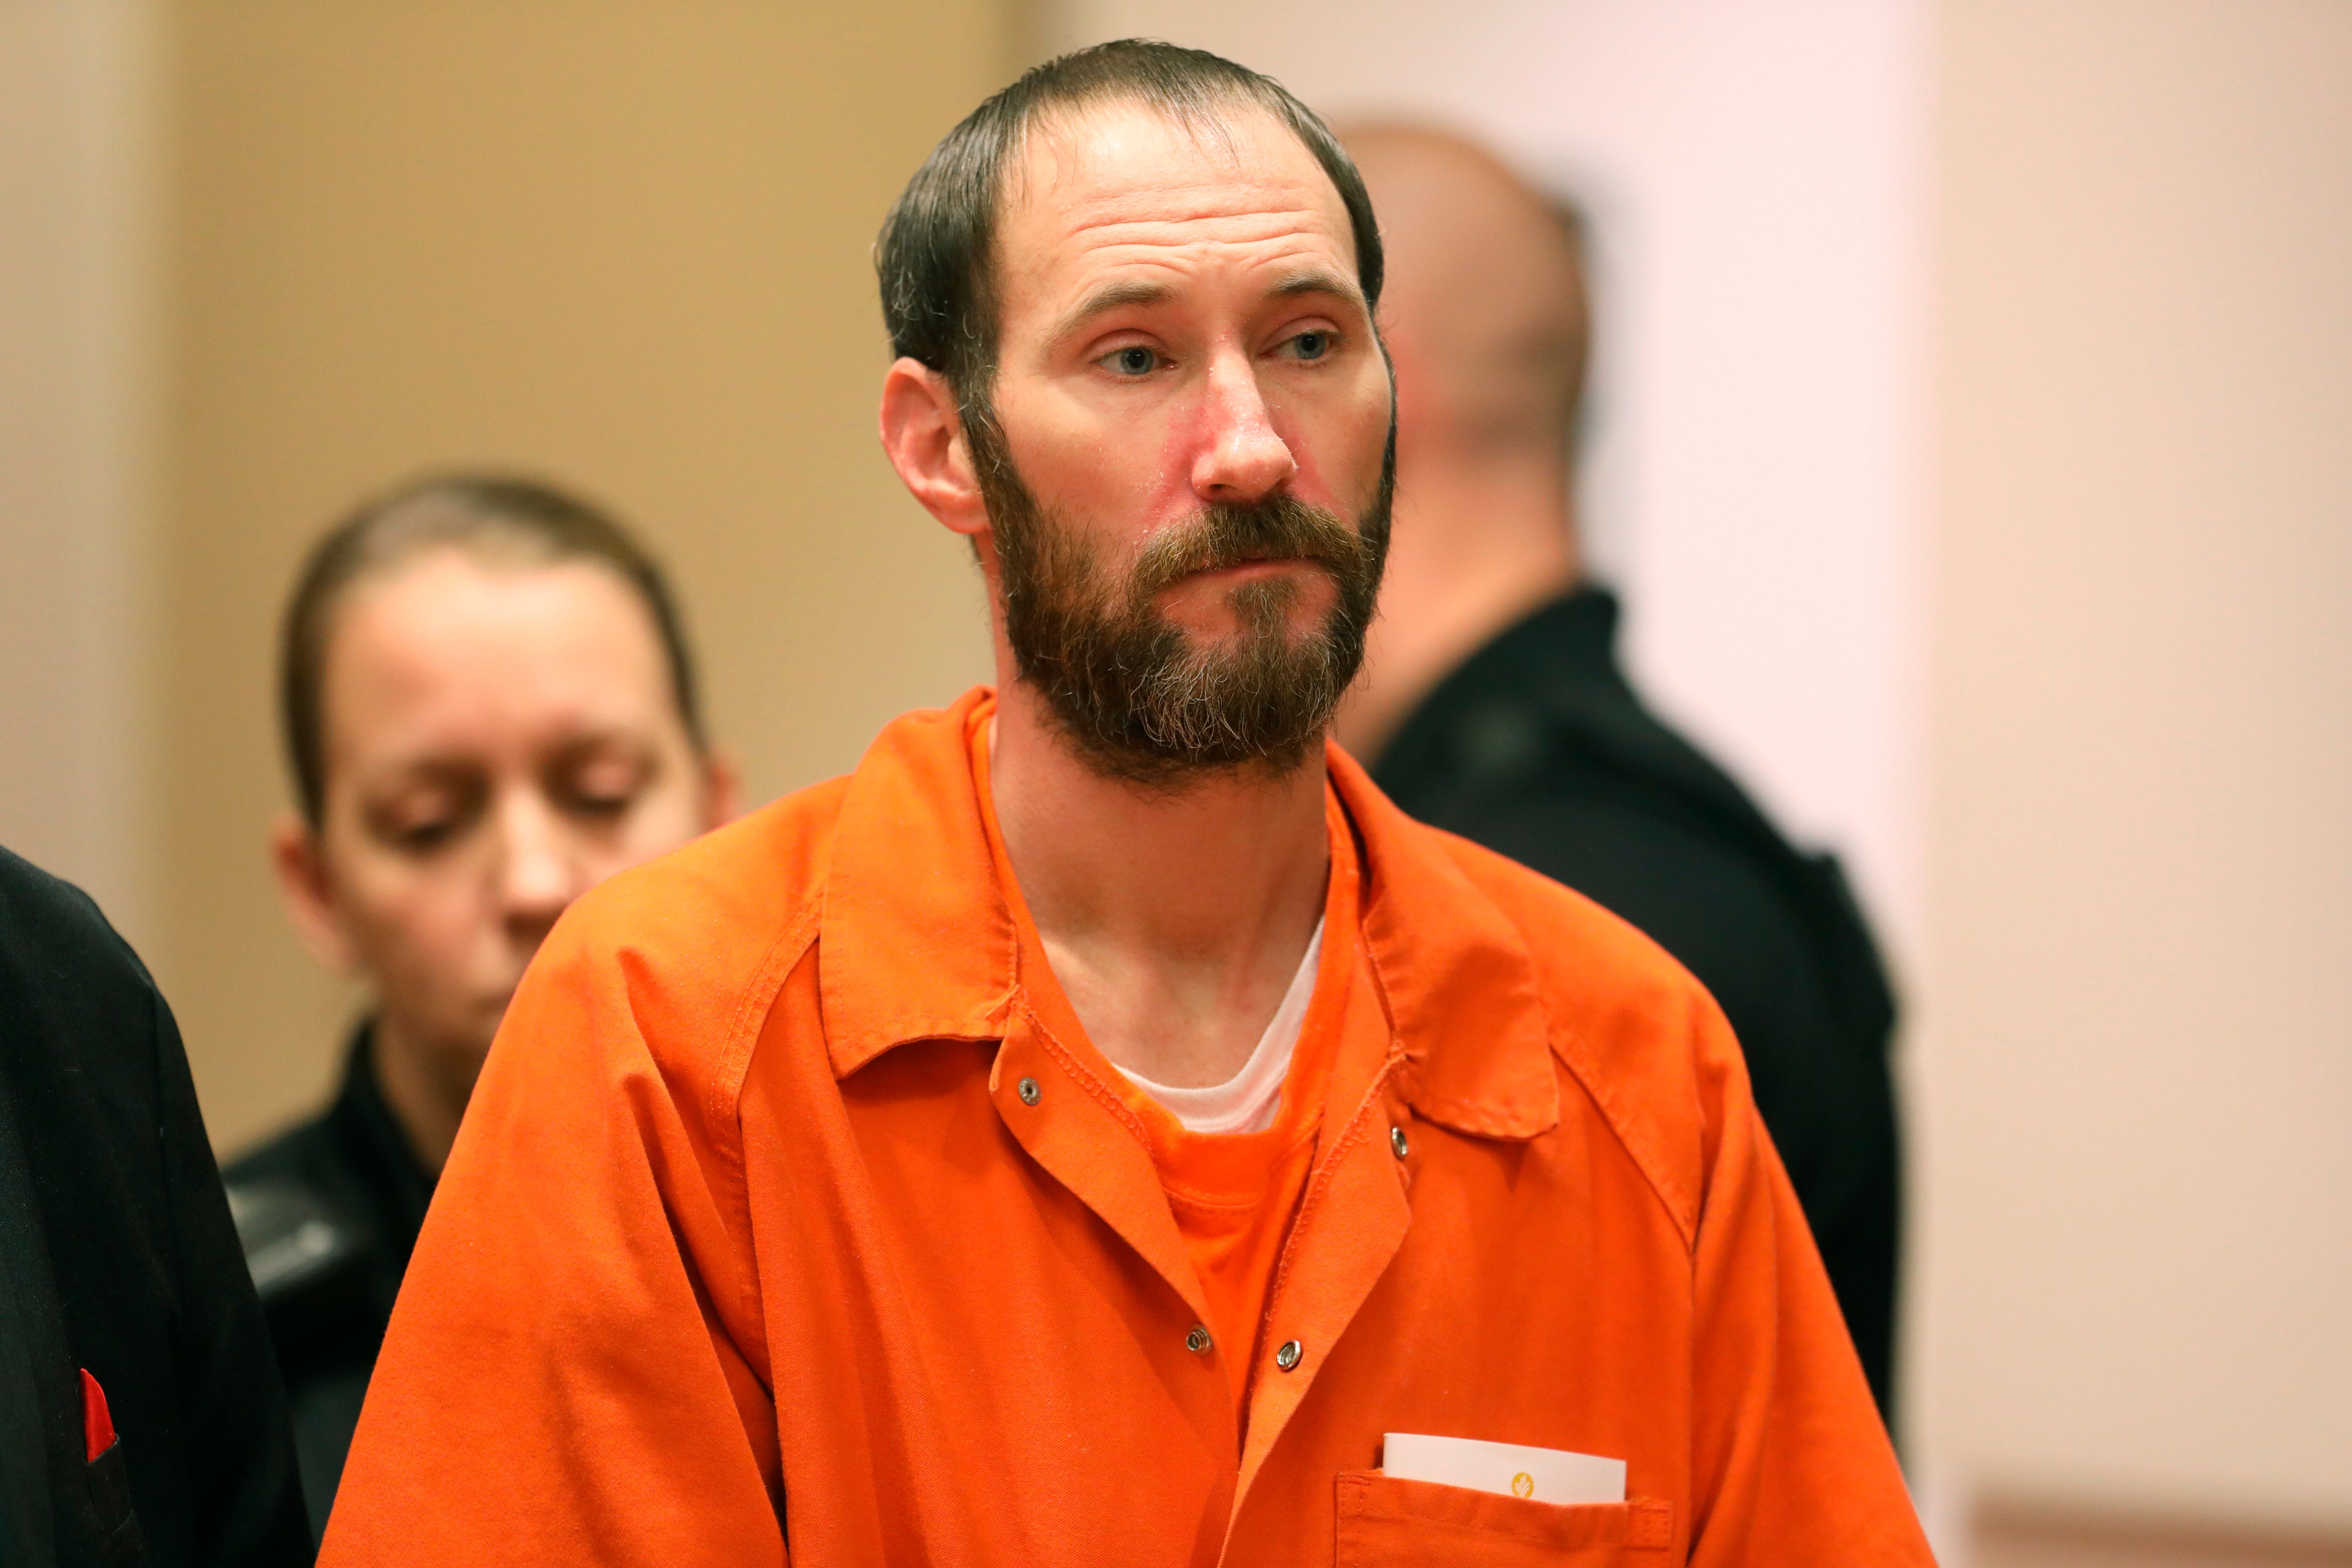 Johnny Bobbitt Jr. is seen in December at a hearing in a New Jersey courtroom. He failed to appear for a hearing earlier